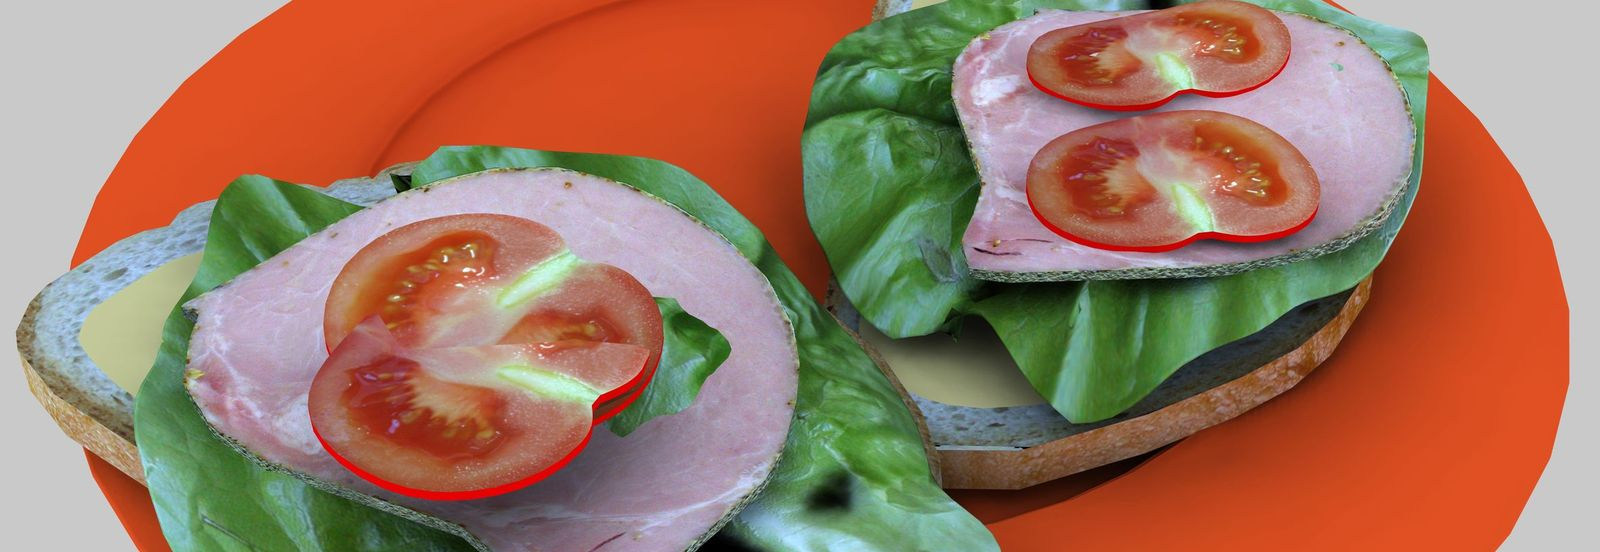 Sandwiches and Salads